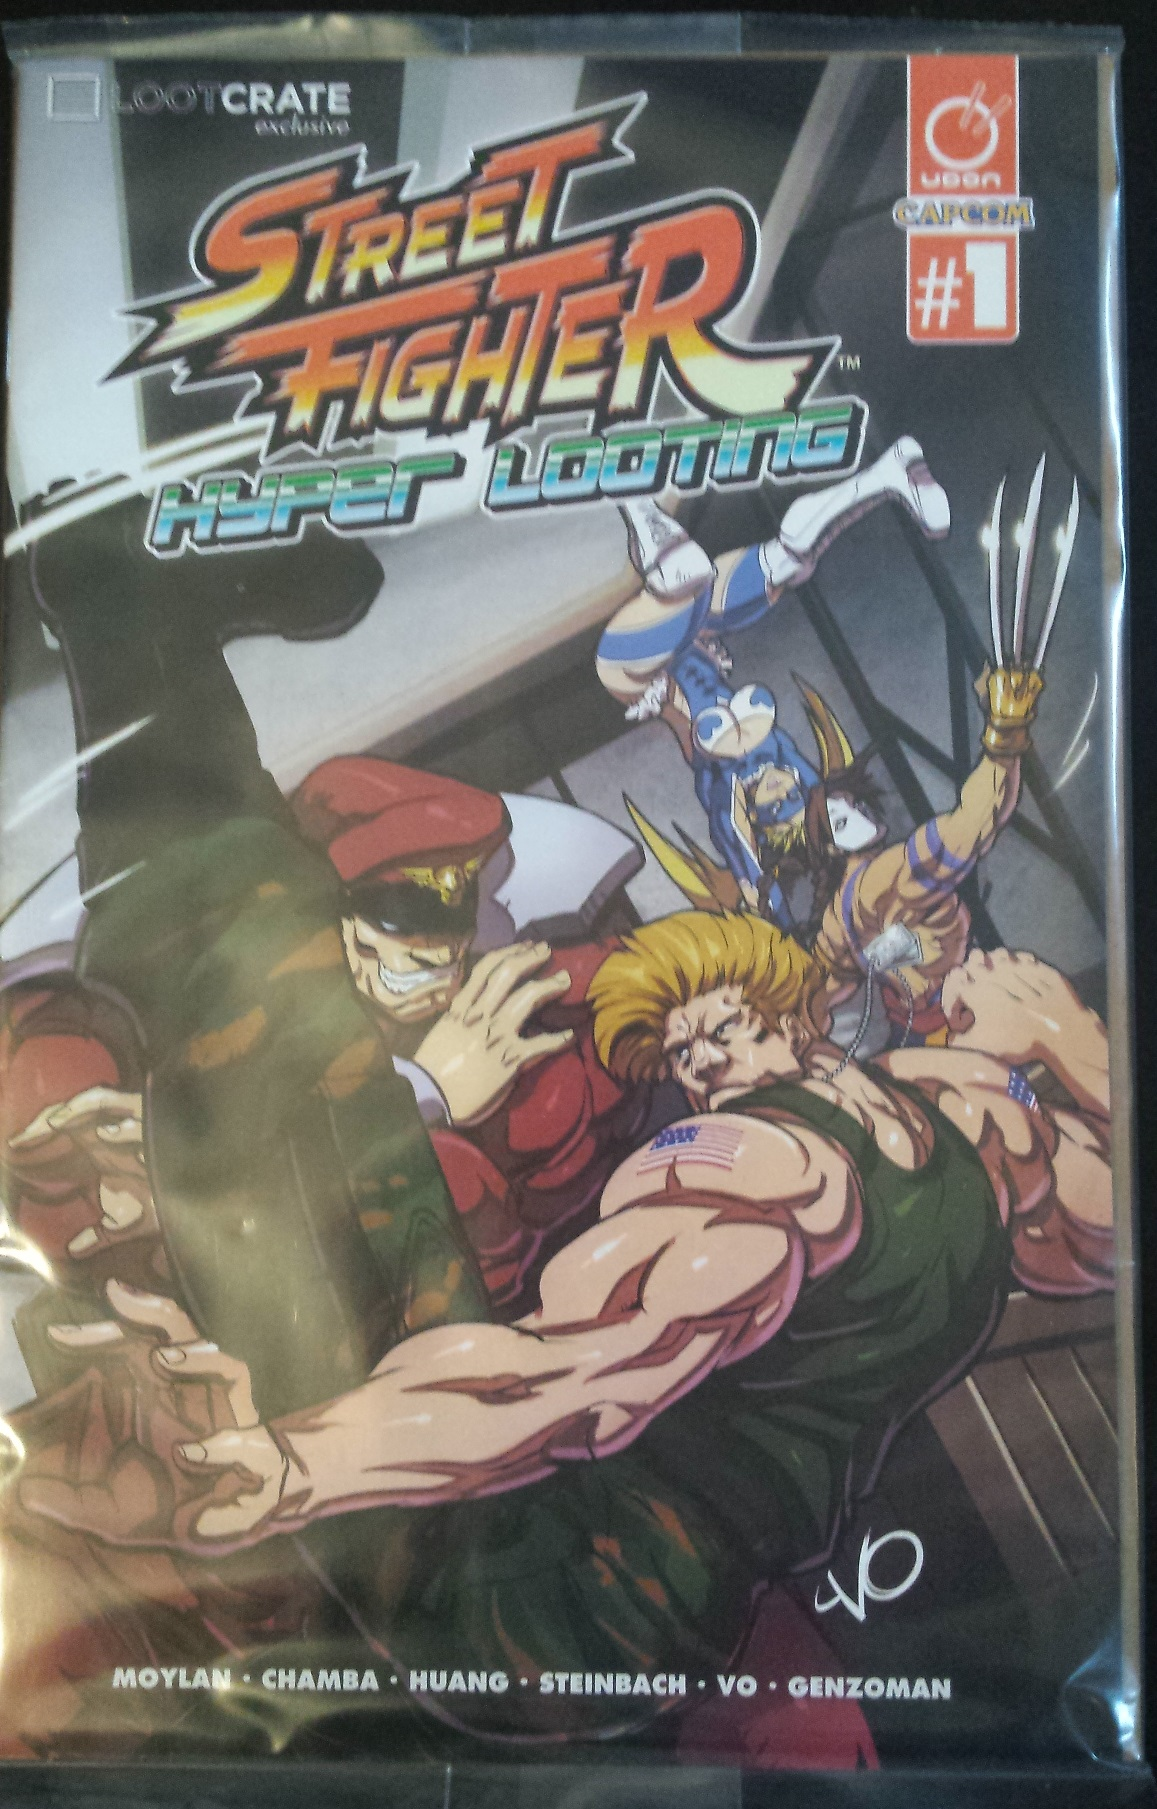 Comic, street fighter, loot crate